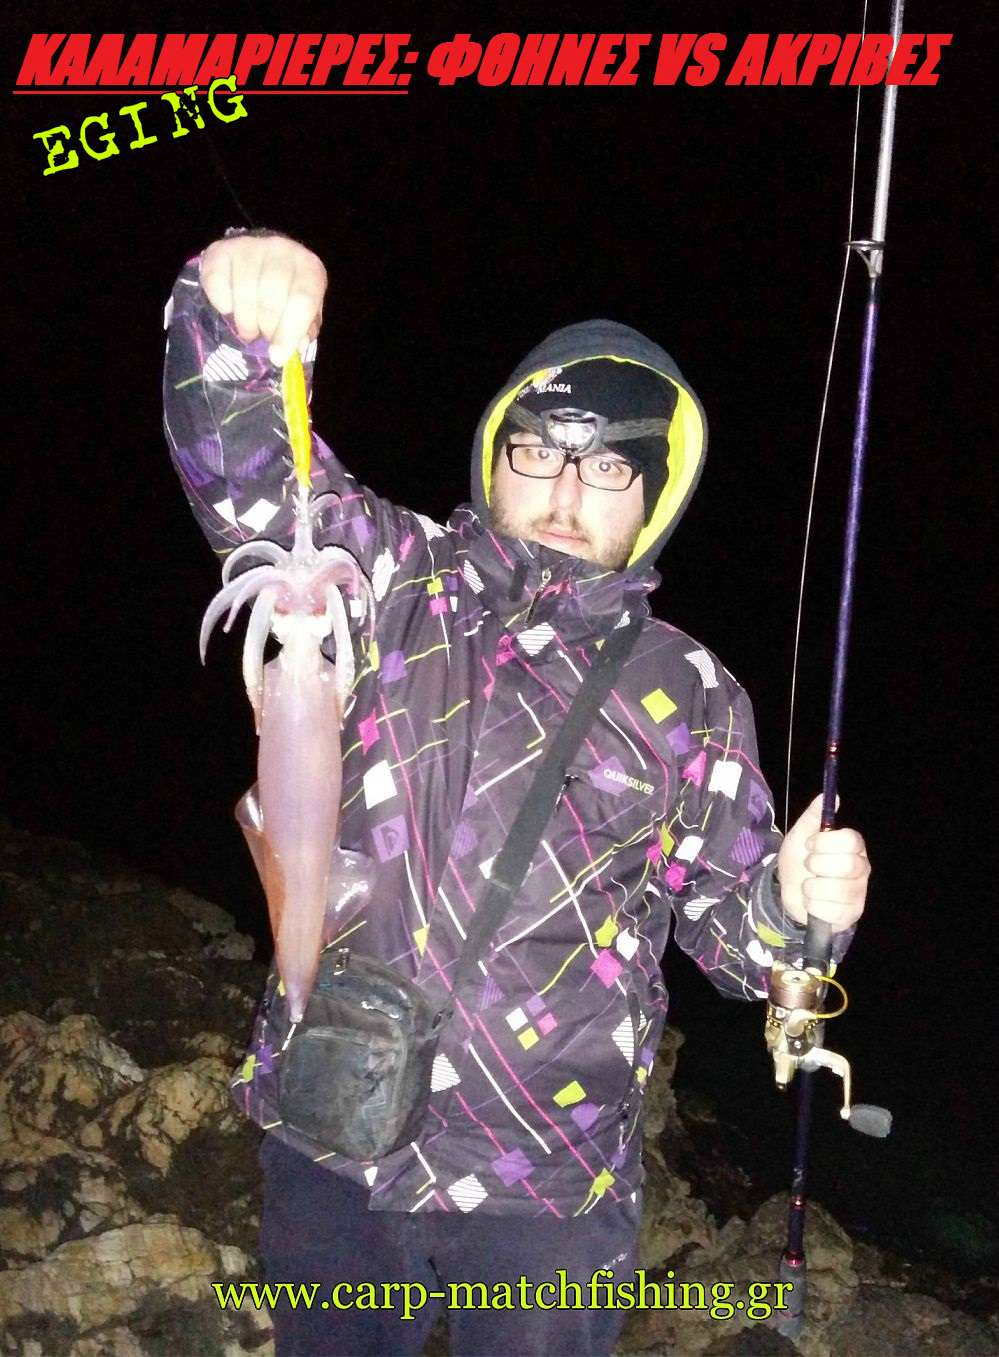 squid-eging-mitraras-carpmatchfishing.jpg.jpg-NEW